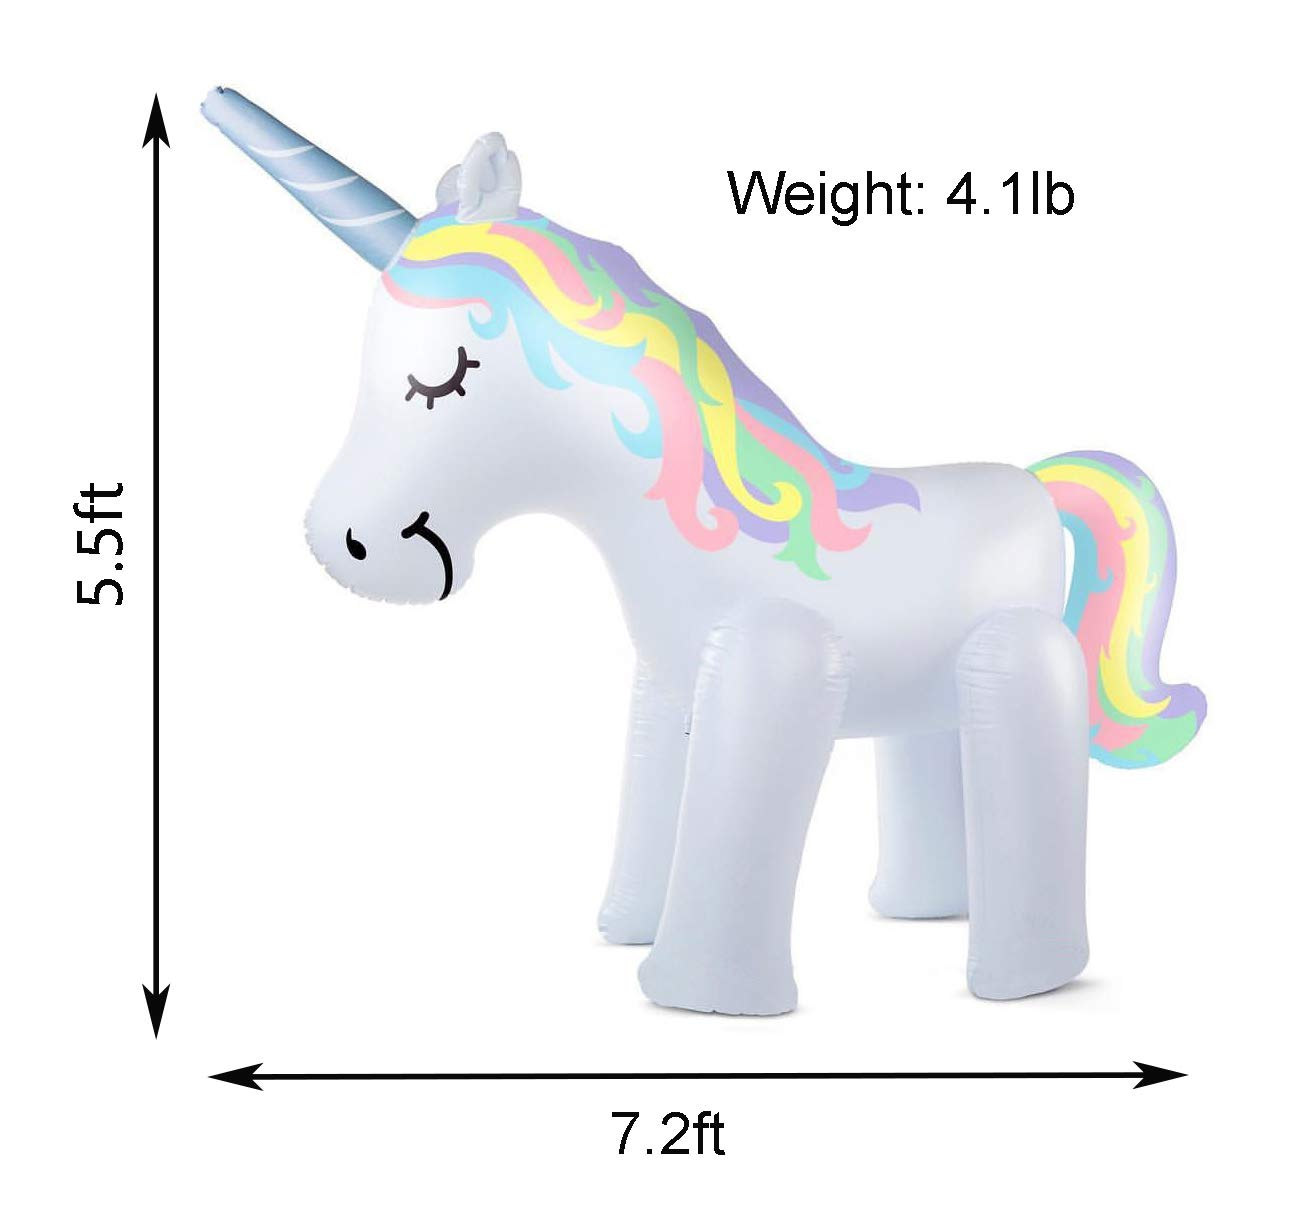 Kimi House Giant Inflatable Unicorn Sprinkler with Over 4.8 Feet Tall, 6.6Feet Long, Water Toys, Yard Summer Sprinkler… 4